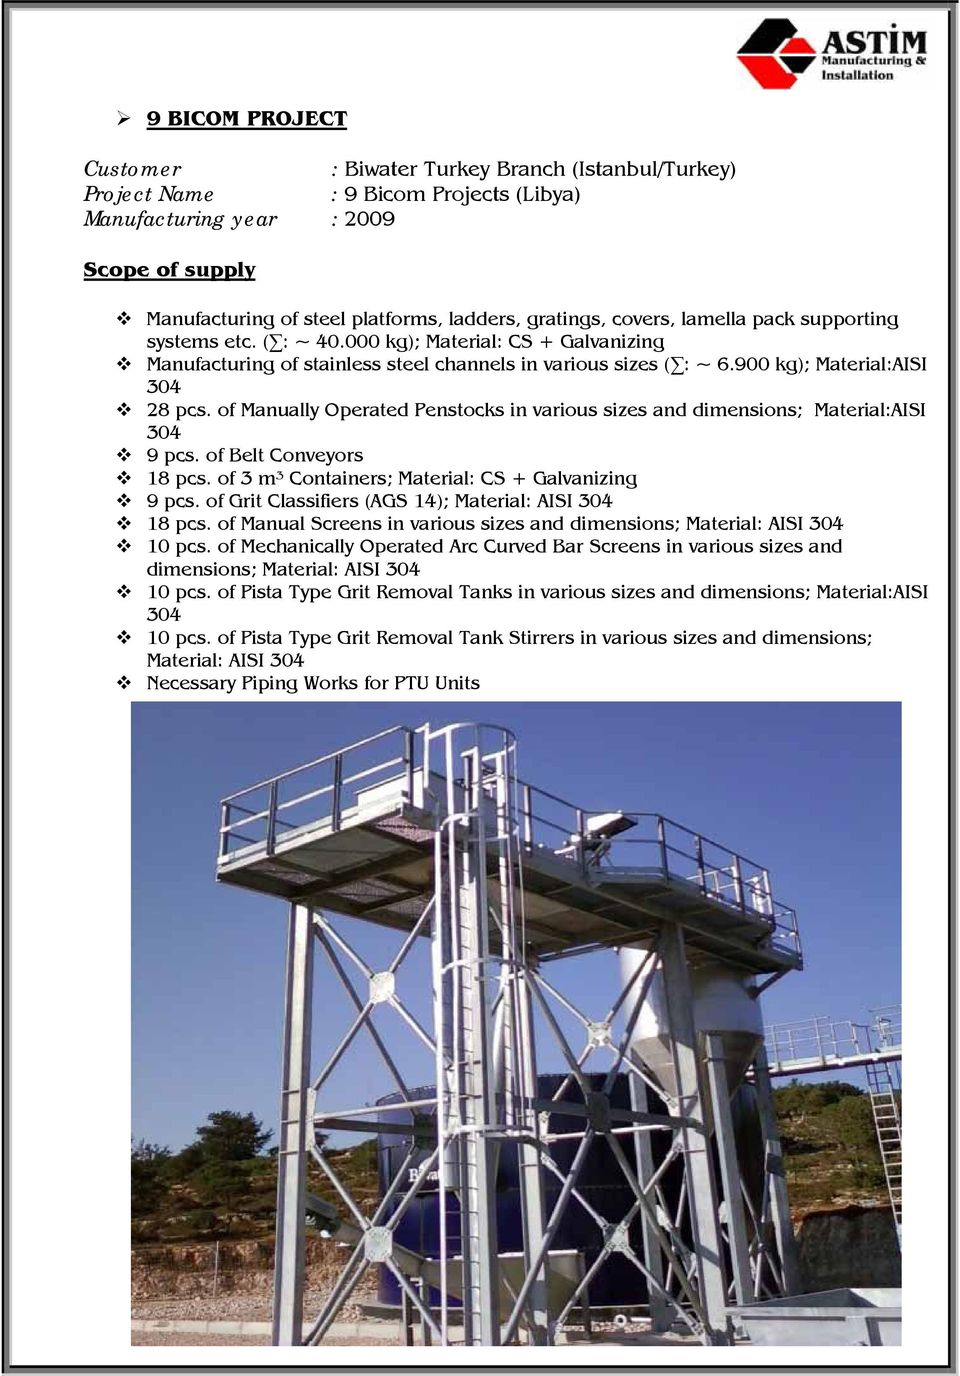 900 kg); Material:AISI 304 28 pcs. of Manually Operated Penstocks in various sizes and dimensions; Material:AISI 304 9 pcs. of Belt Conveyors 18 pcs.